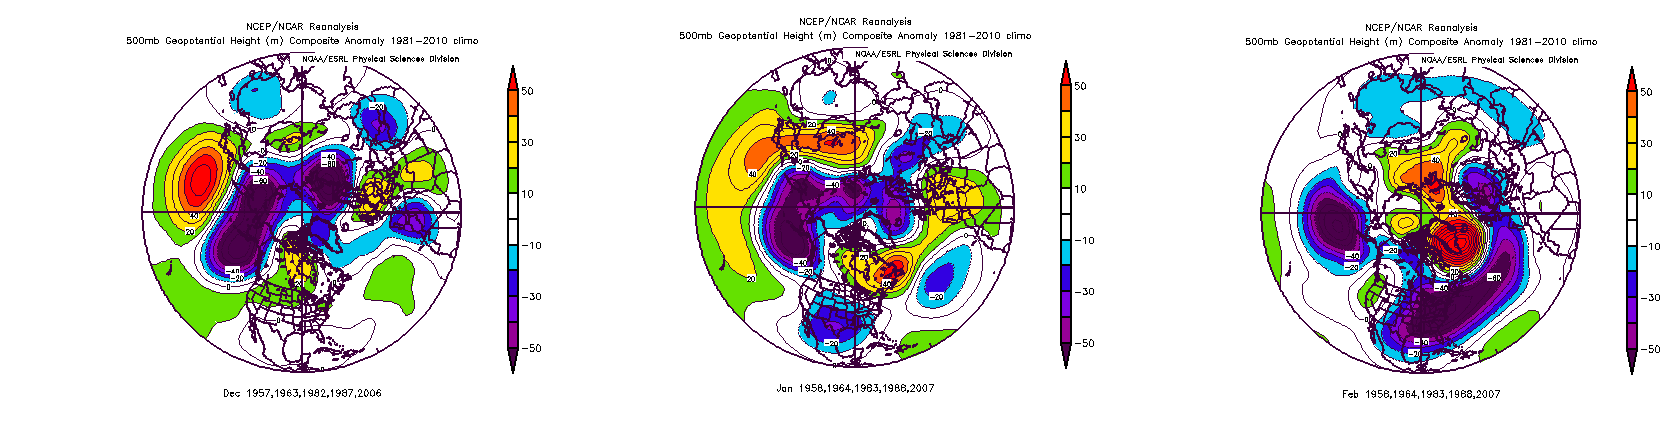 DJF Mod-Strong w +QBO 500mb anomaly